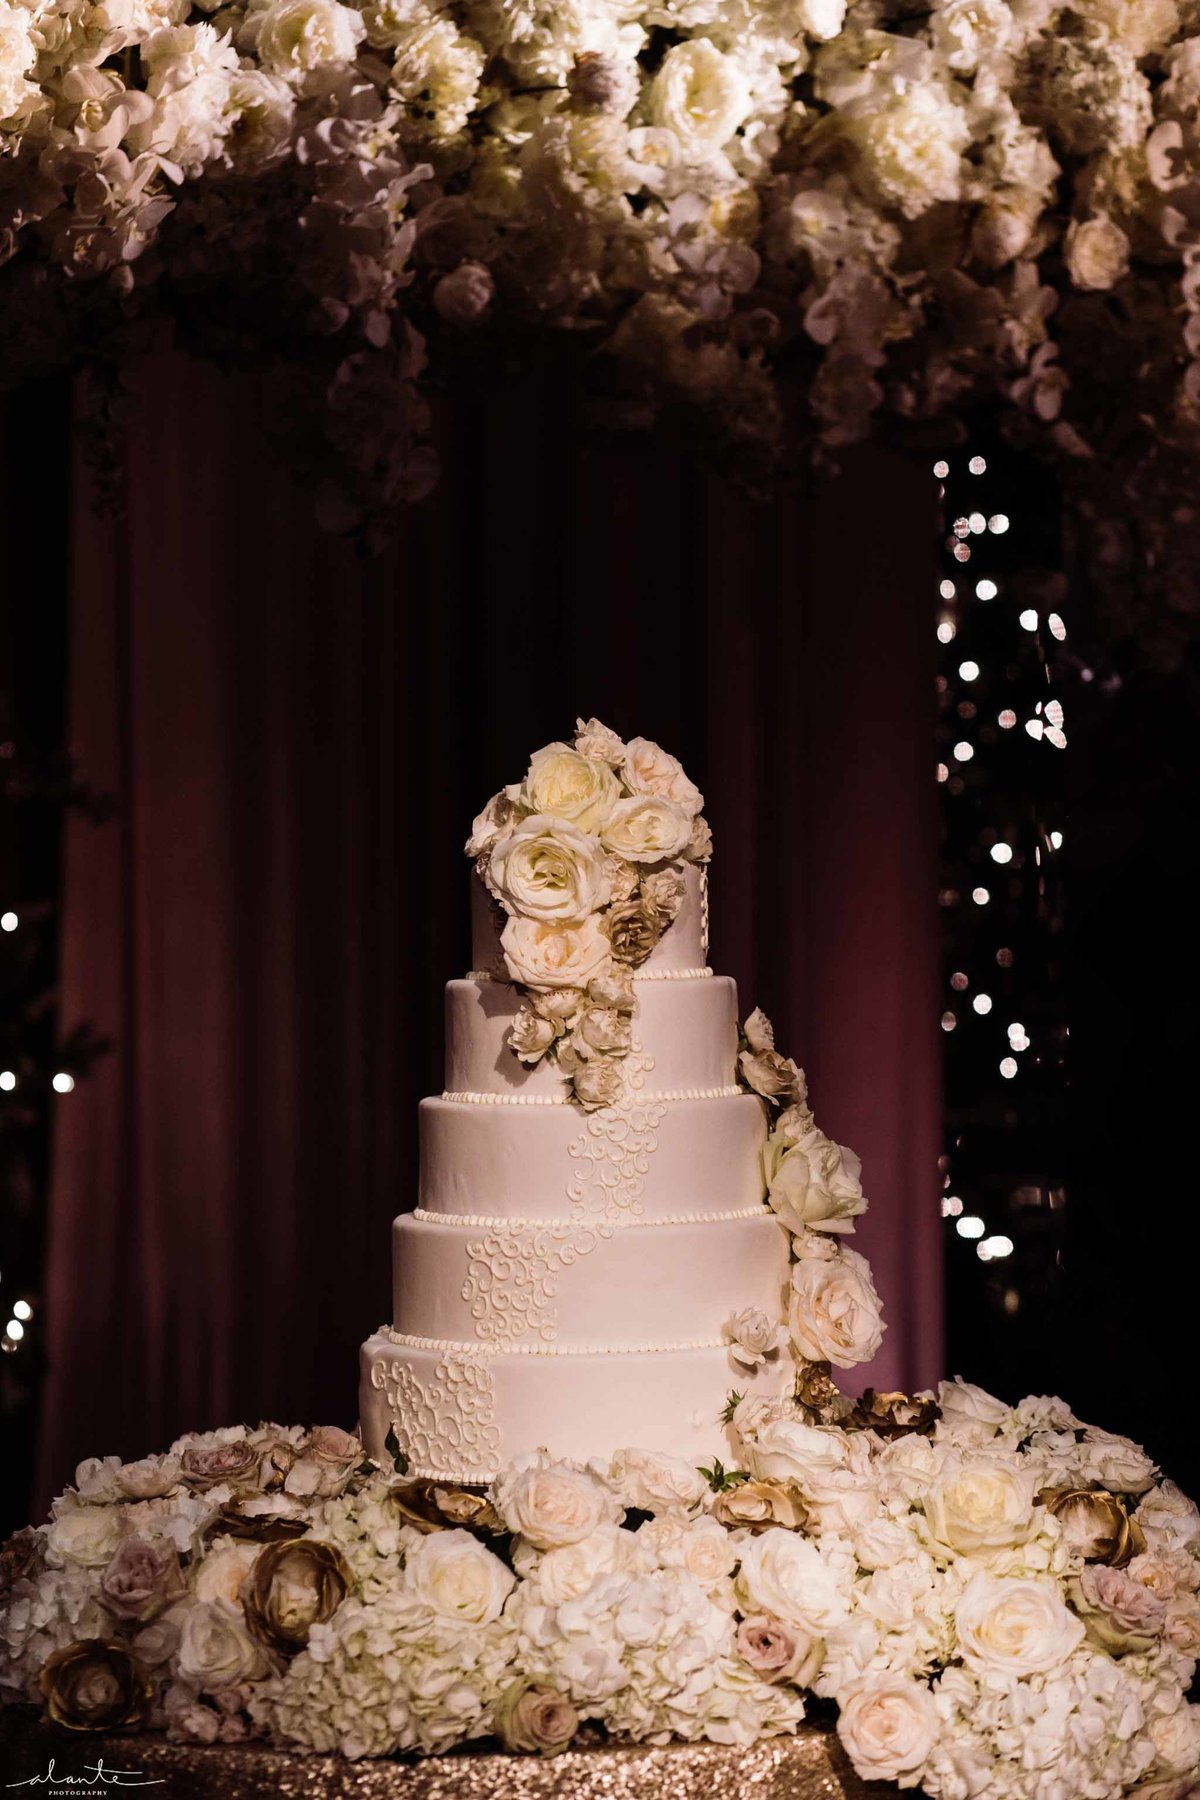 White tired wedding cake surrounded by white flowers.